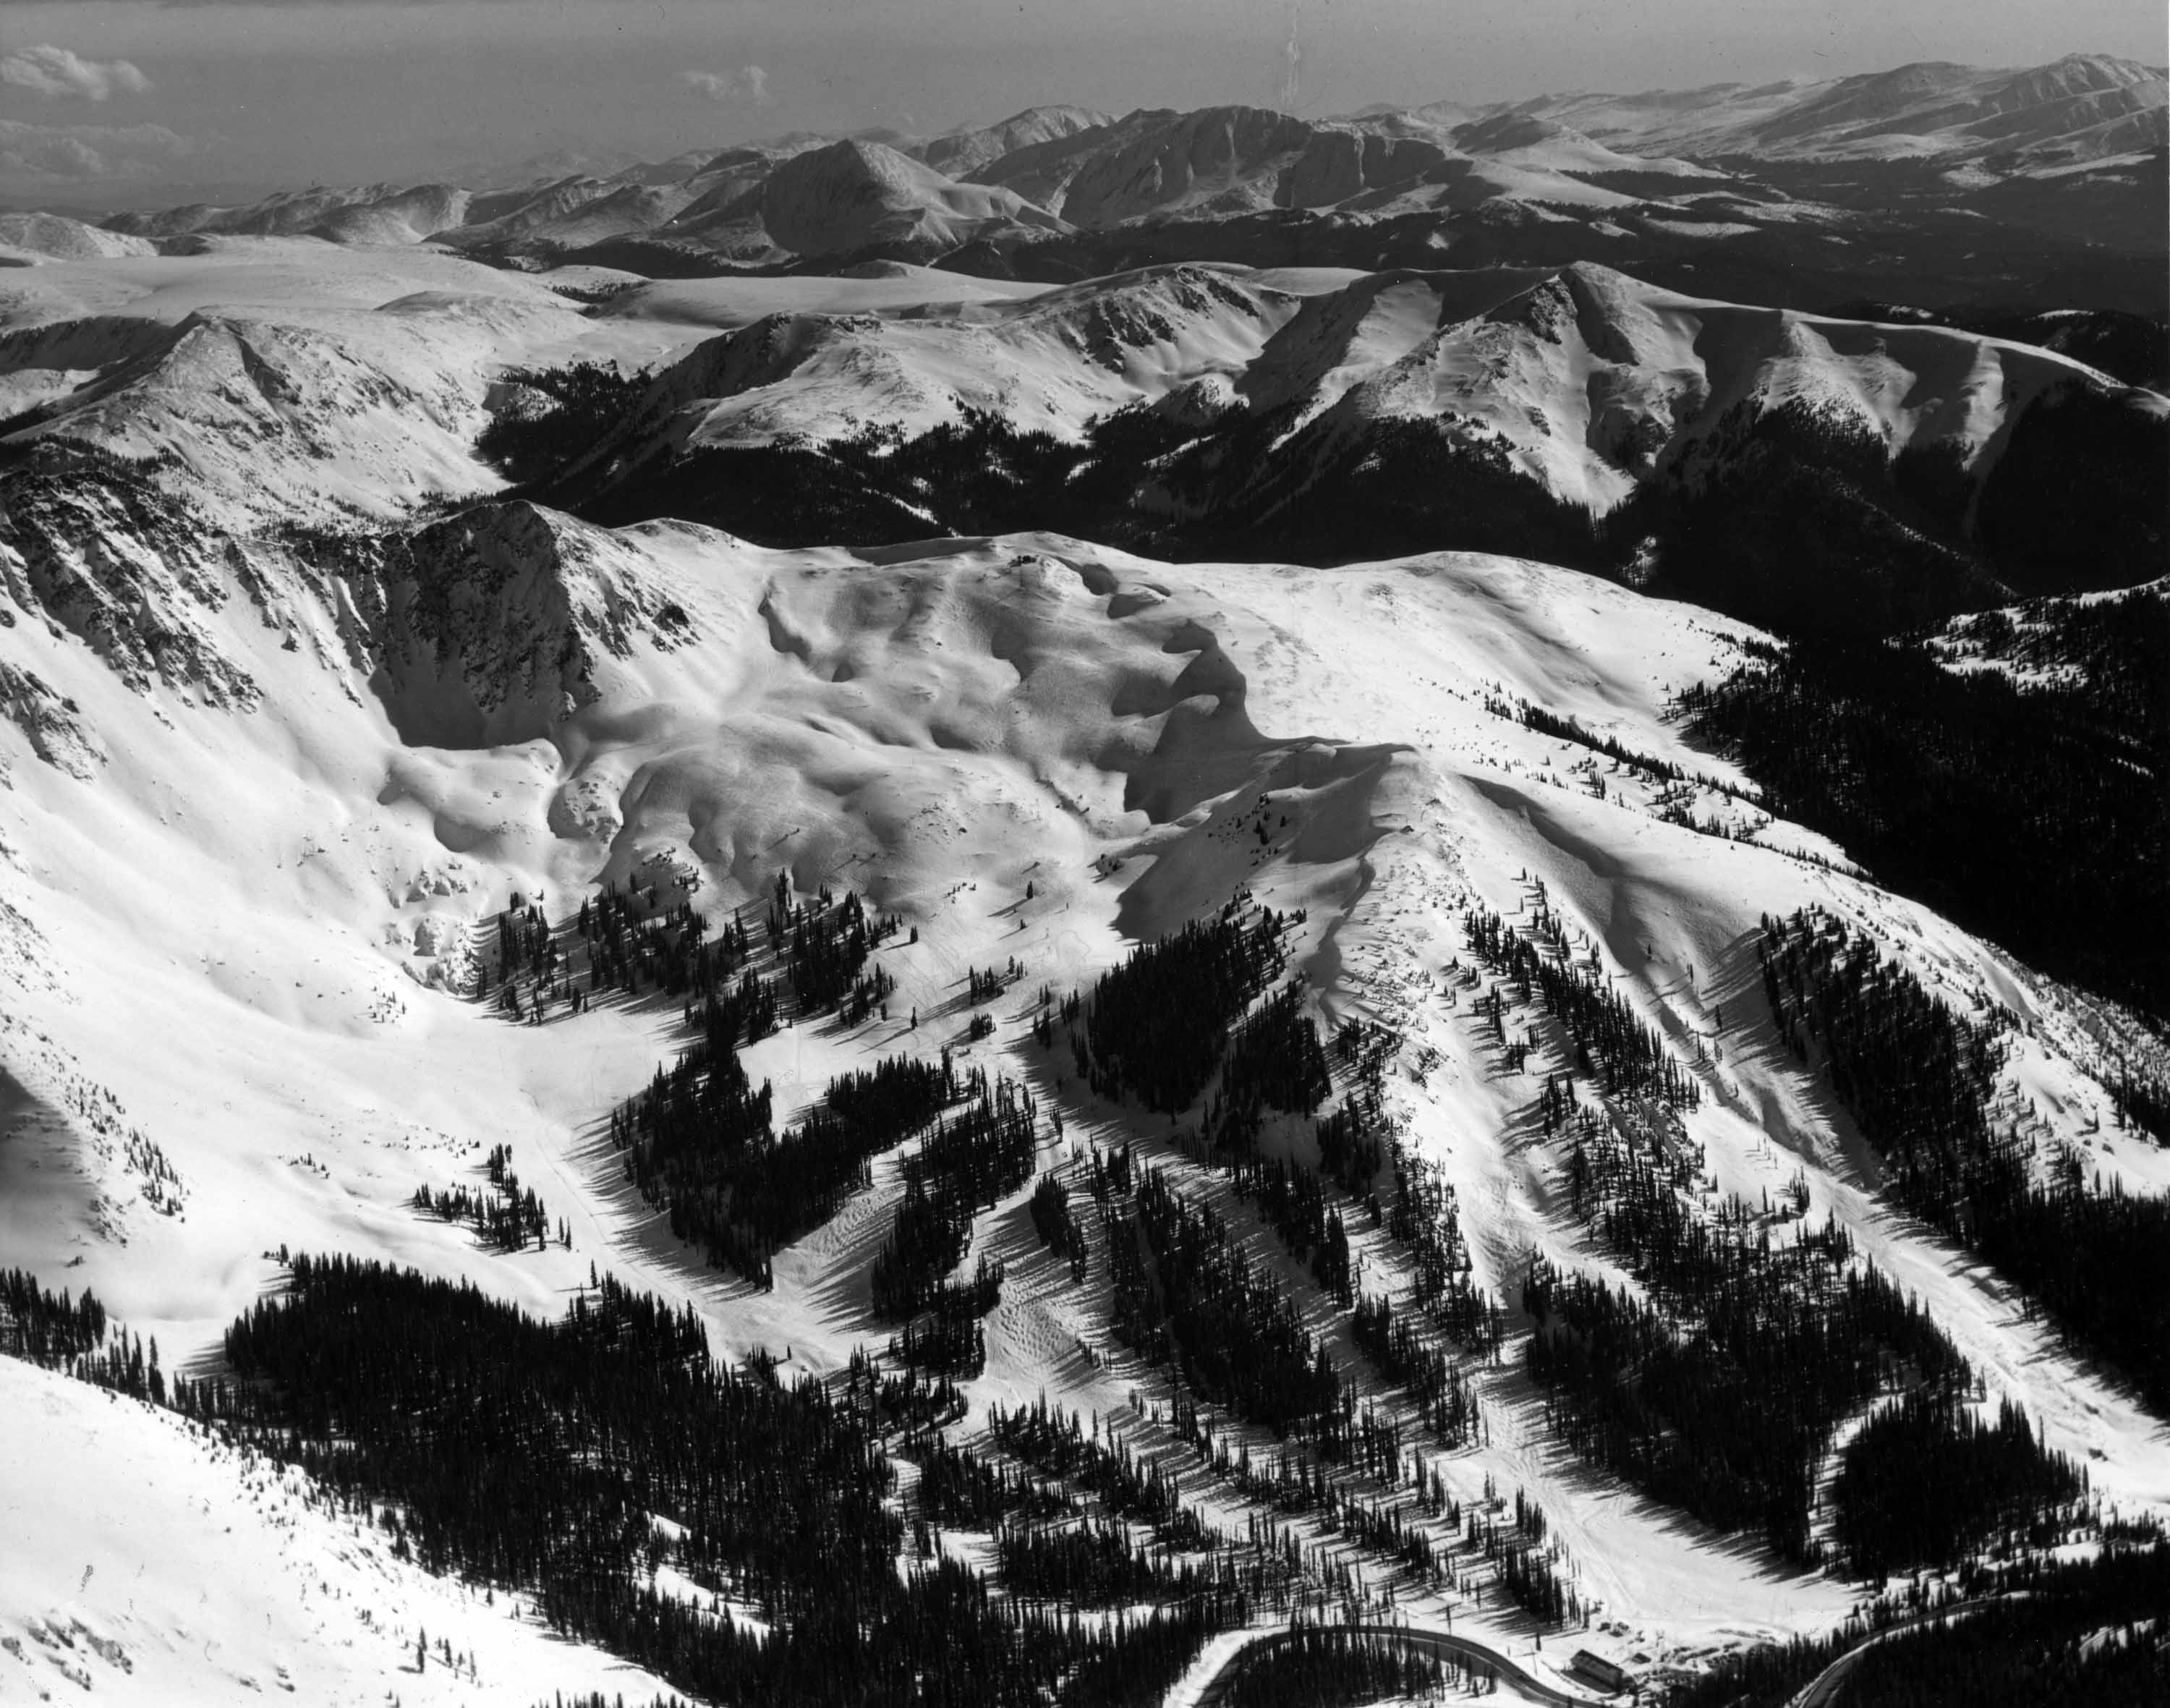 Arapahoe Basin, Colorado. Courtesy of Denver Public Library